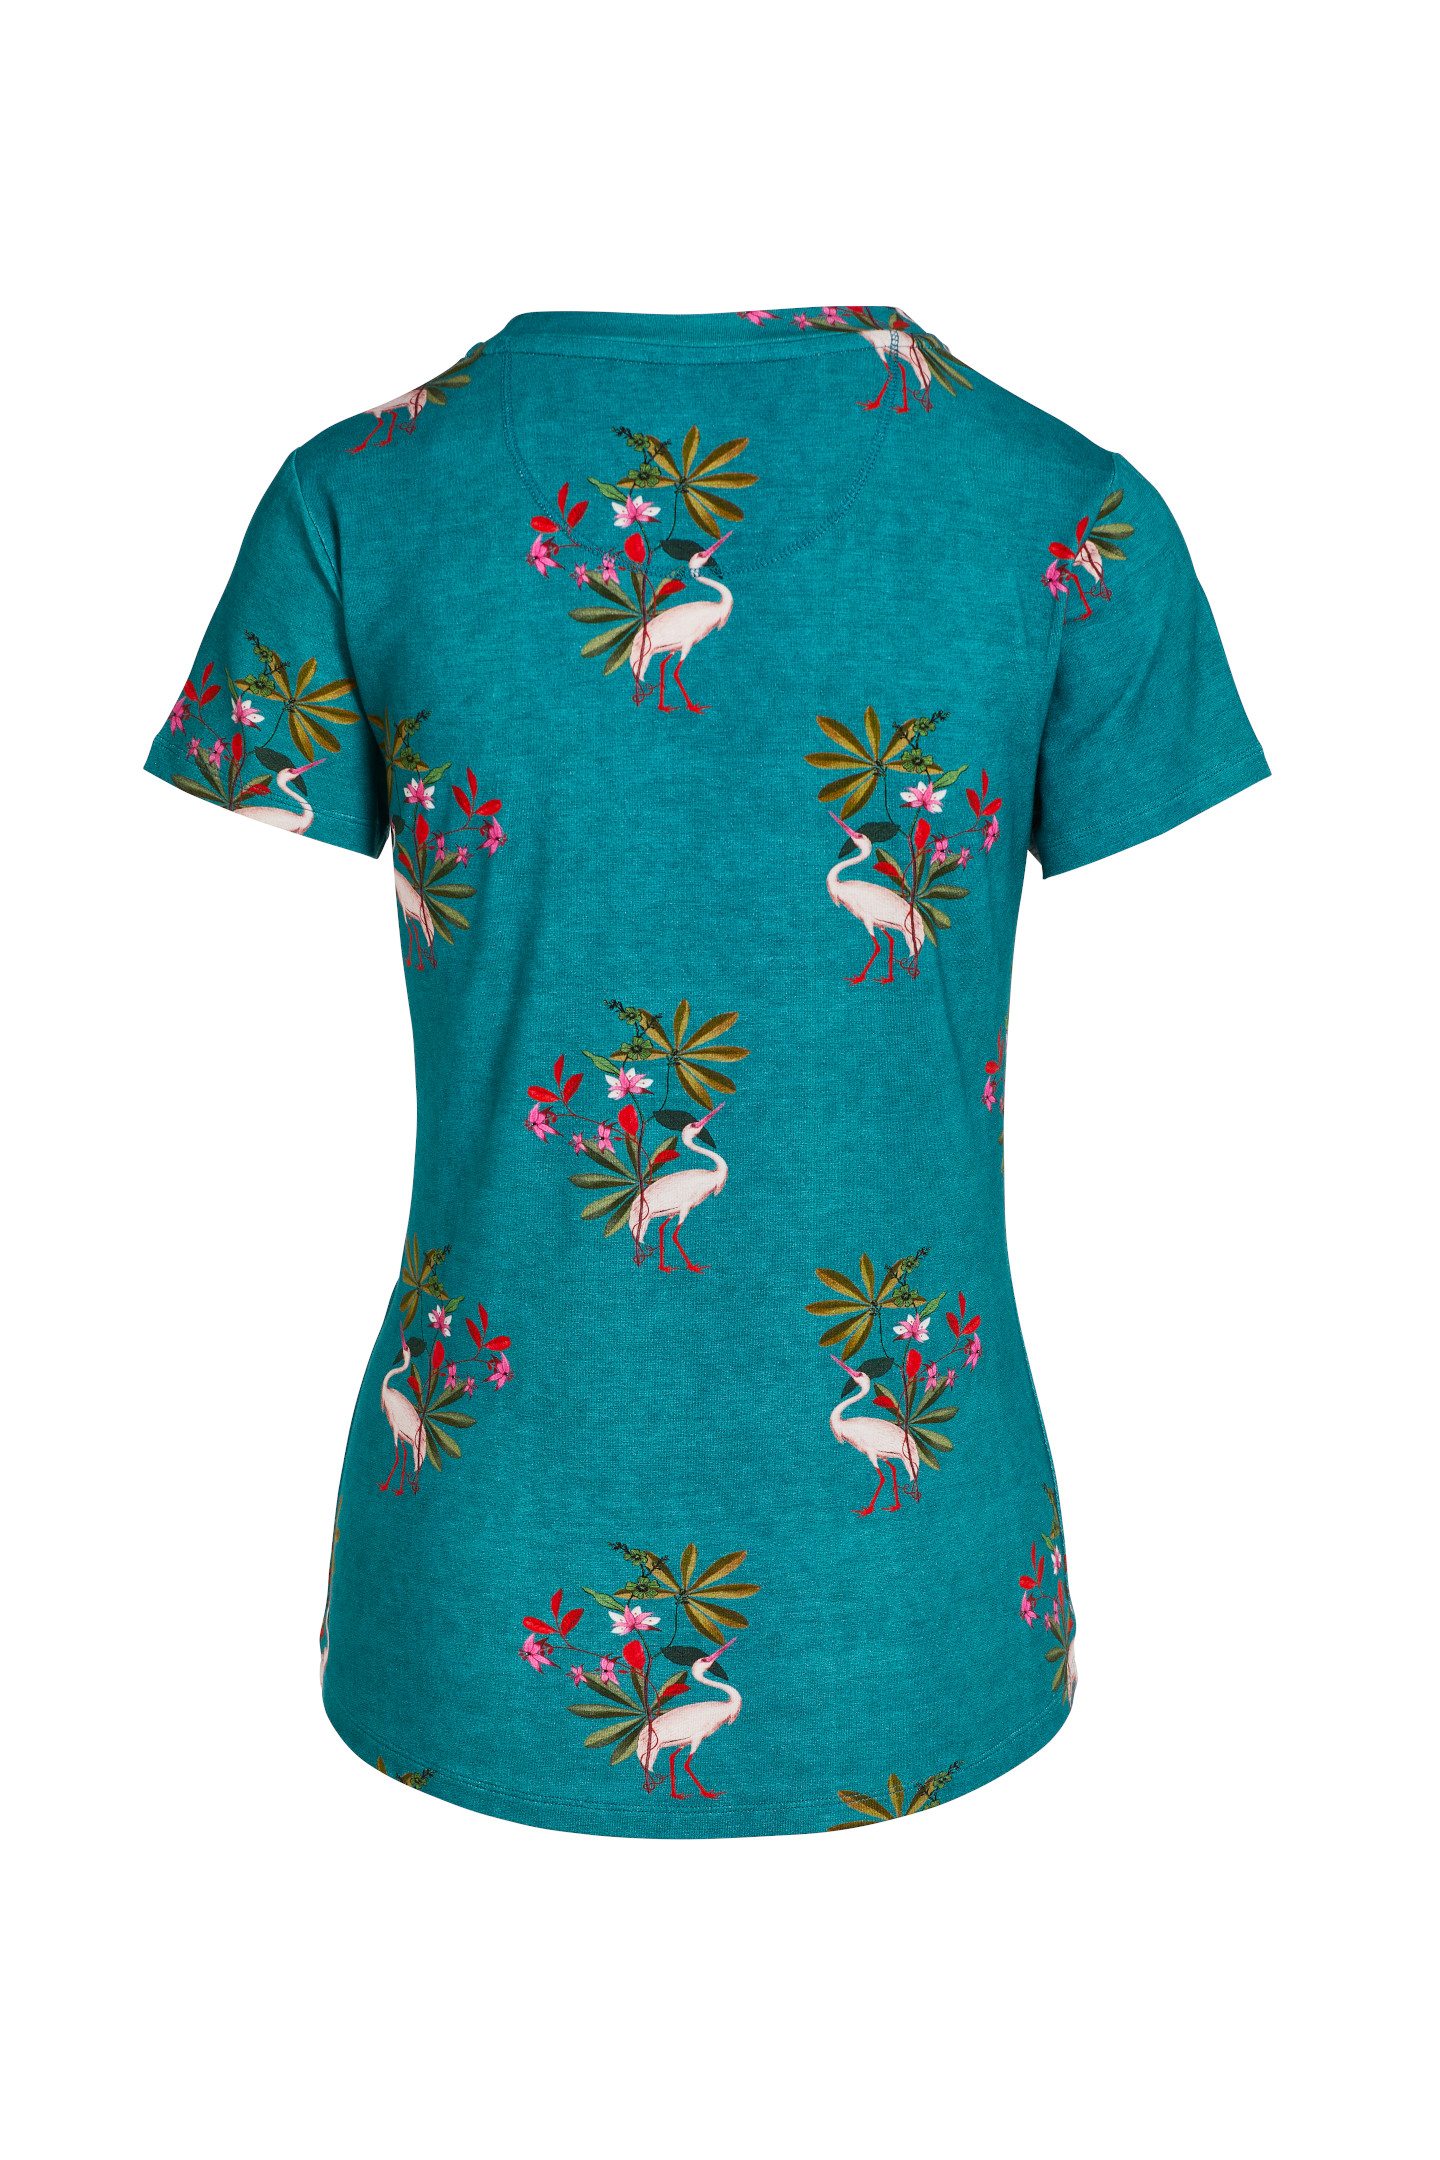 Pip Studio tričko Tanja Short Sleeve My Heron Green